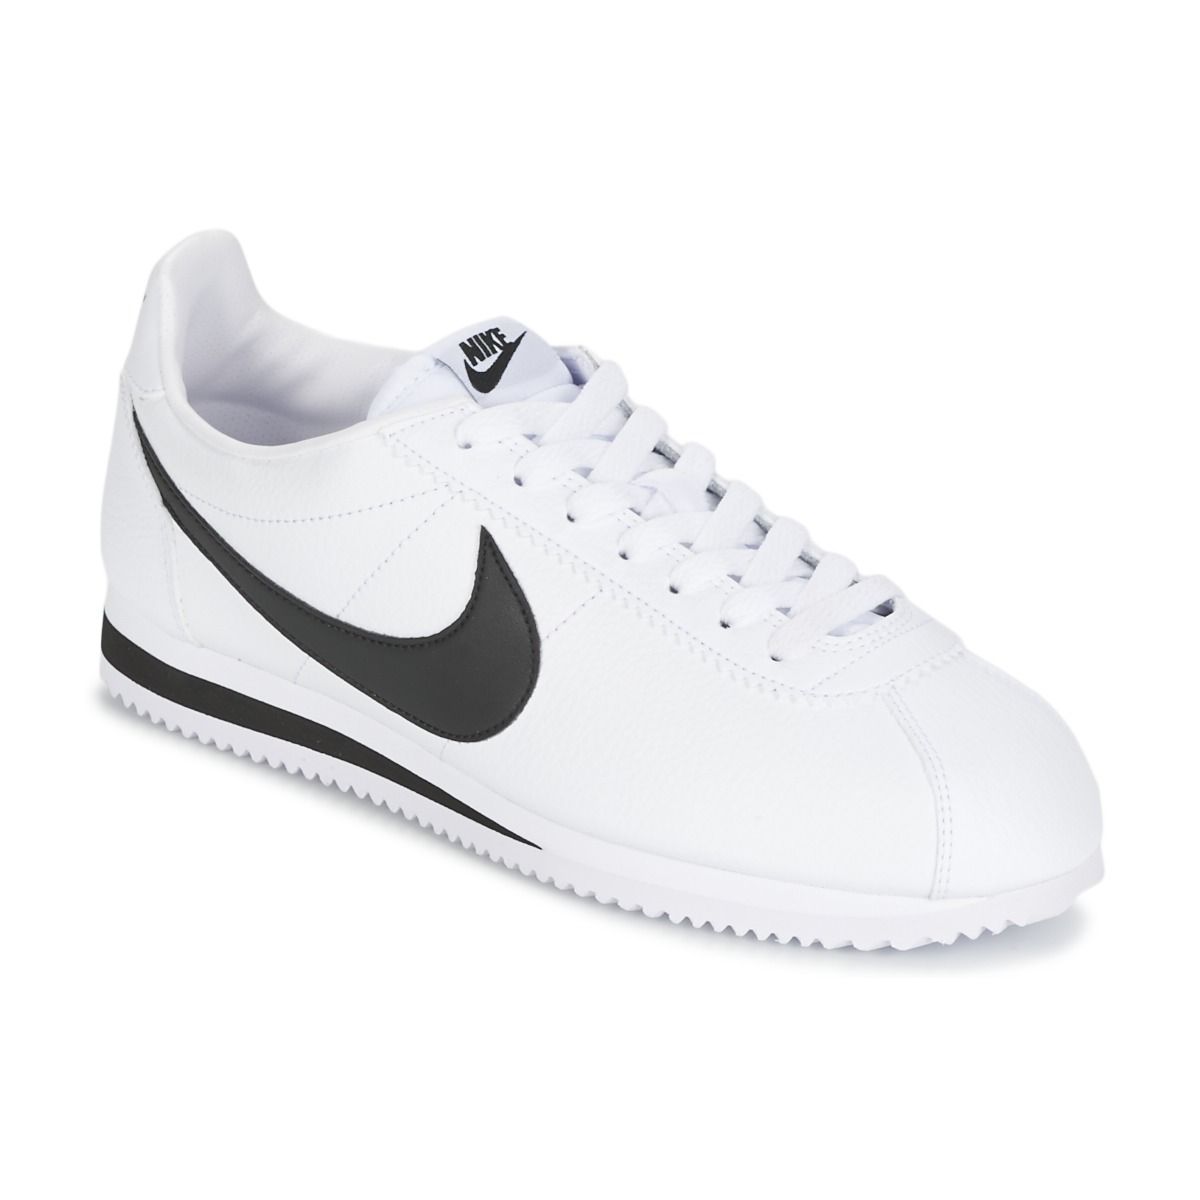 nike classic cortez leather weiss schwarz kostenloser. Black Bedroom Furniture Sets. Home Design Ideas